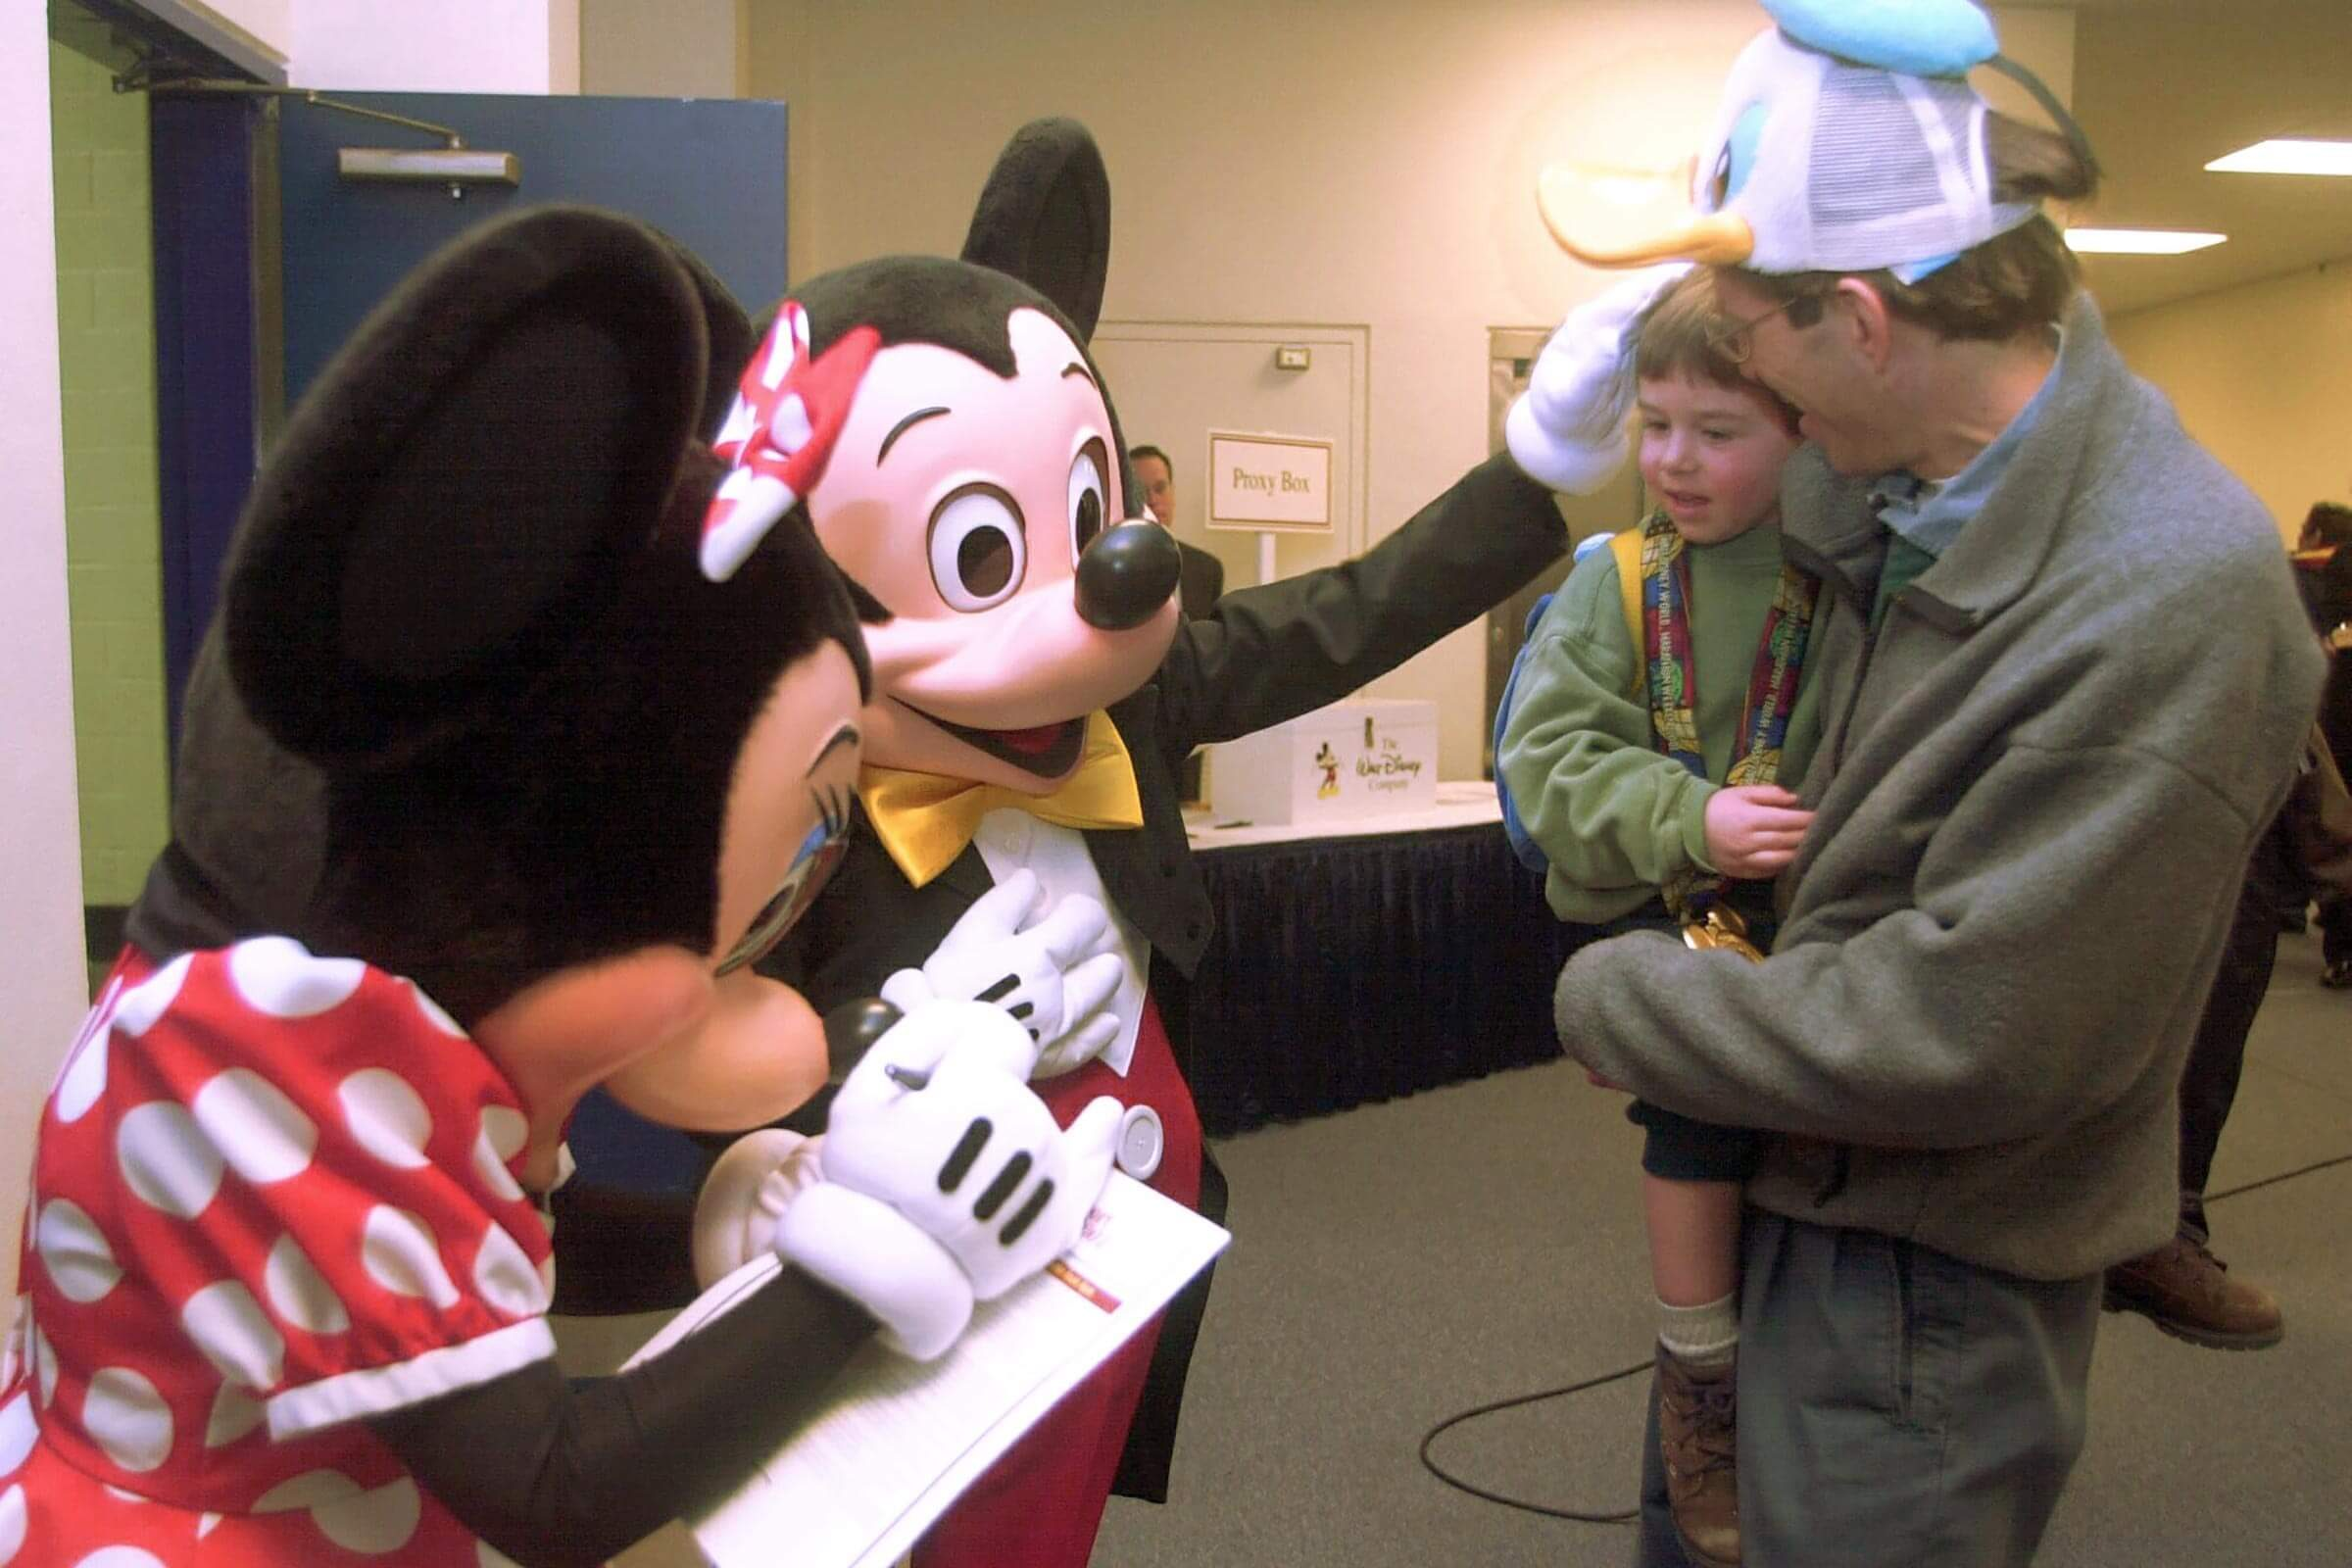 MOUSE An actor dressed as Mickey Mouse pats Michael Thramann, 3, of Avon, Conn., on the head before the start of a Disney Corp. stockholders meeting in Hartford, Conn., . Michael is held by his father, Bill Thramann, who was wearing a Donald Duck hat. At left an actress dressed as Minnie Mouse signs an autograph. Actors dressed as Disney characteres were on hand to greet Disney stockholders as they arrived for the meeting